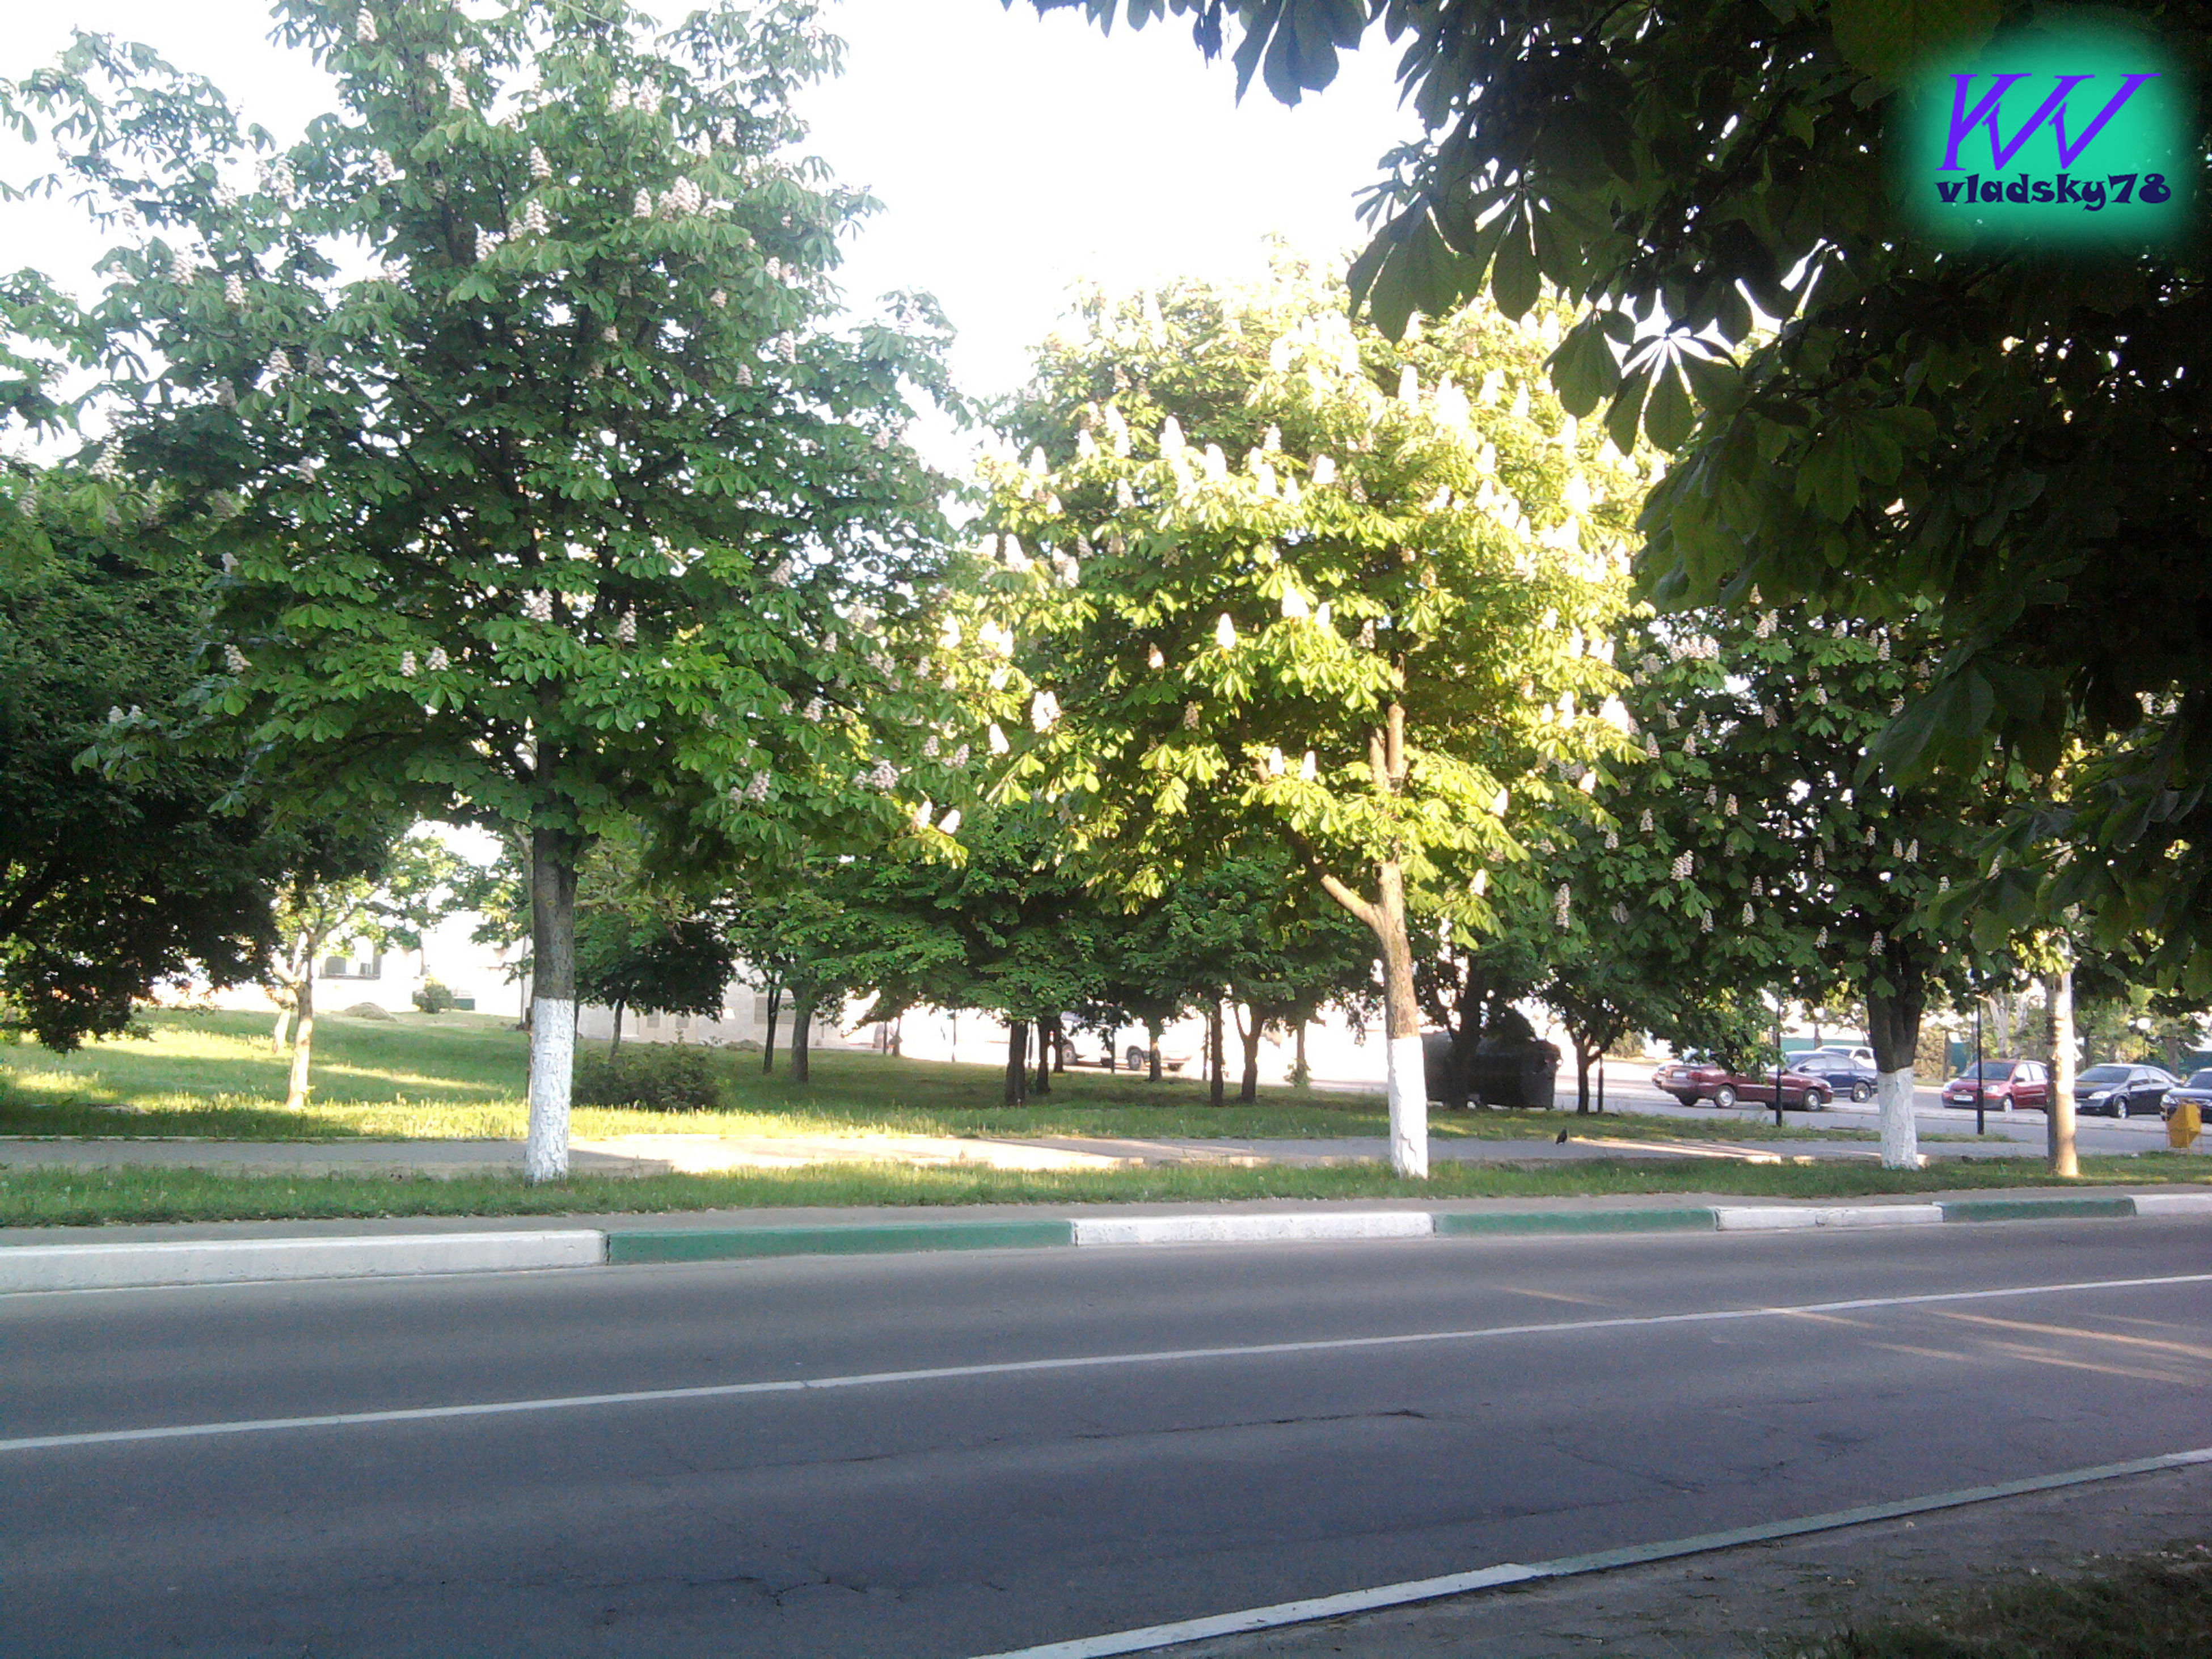 tree, road, no people, green color, outdoors, growth, day, nature, city